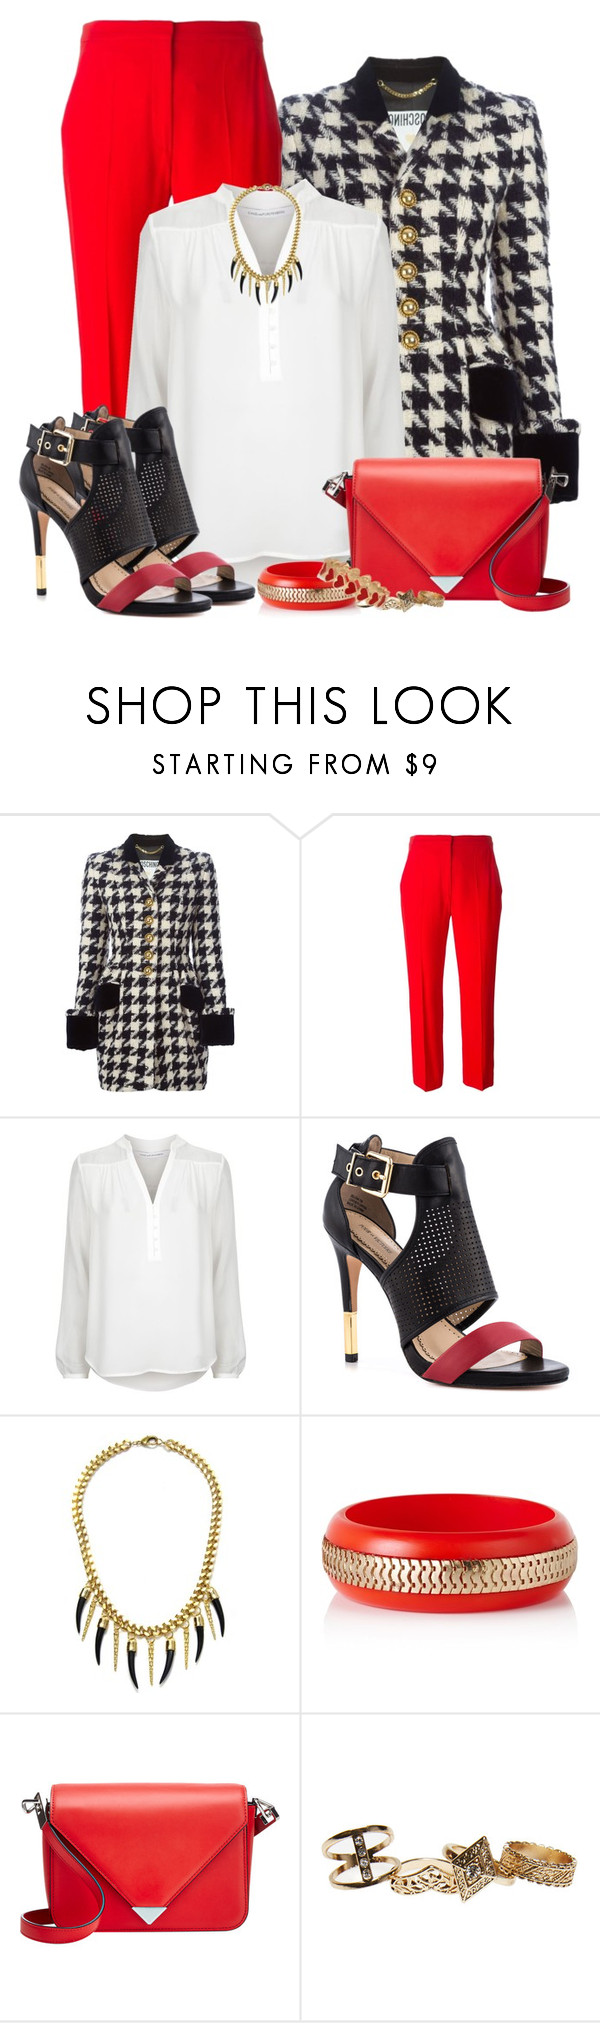 """Sem título #518"" by luhmartins ❤ liked on Polyvore featuring Moschino, Alexander McQueen, Diane Von Furstenberg, Pour La Victoire, Alexander Wang, Wet Seal, Alison Lou, white, black and red"